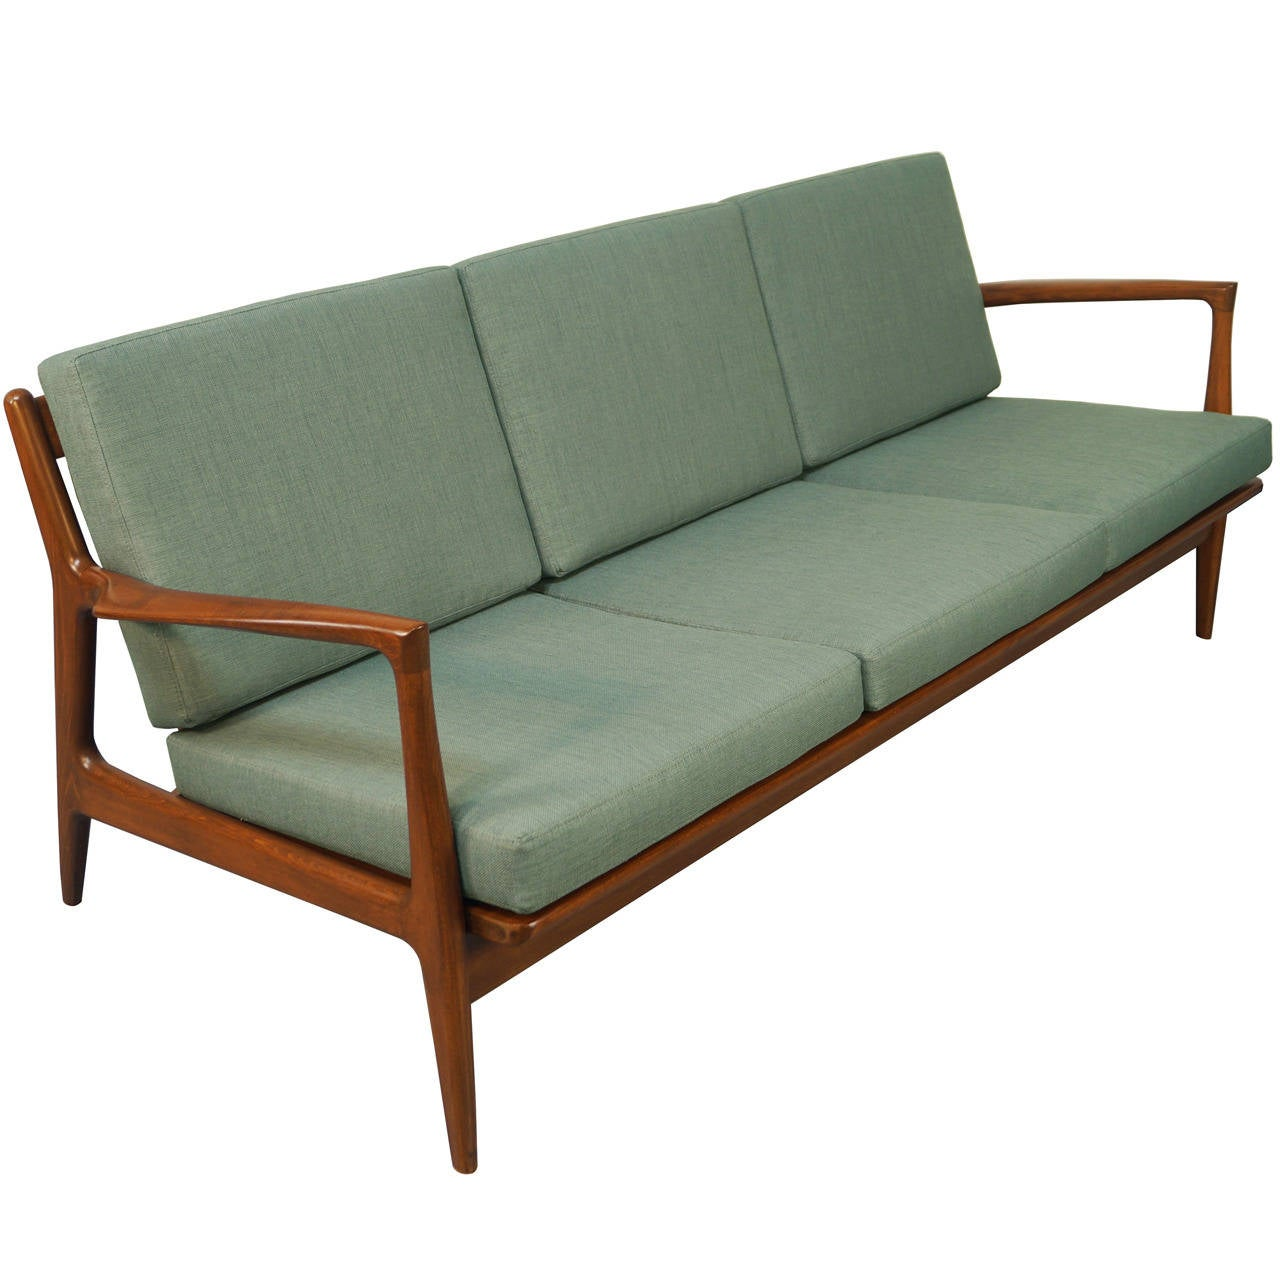 Danish modern sofa by ib kofod larsen at 1stdibs for Modern furniture london